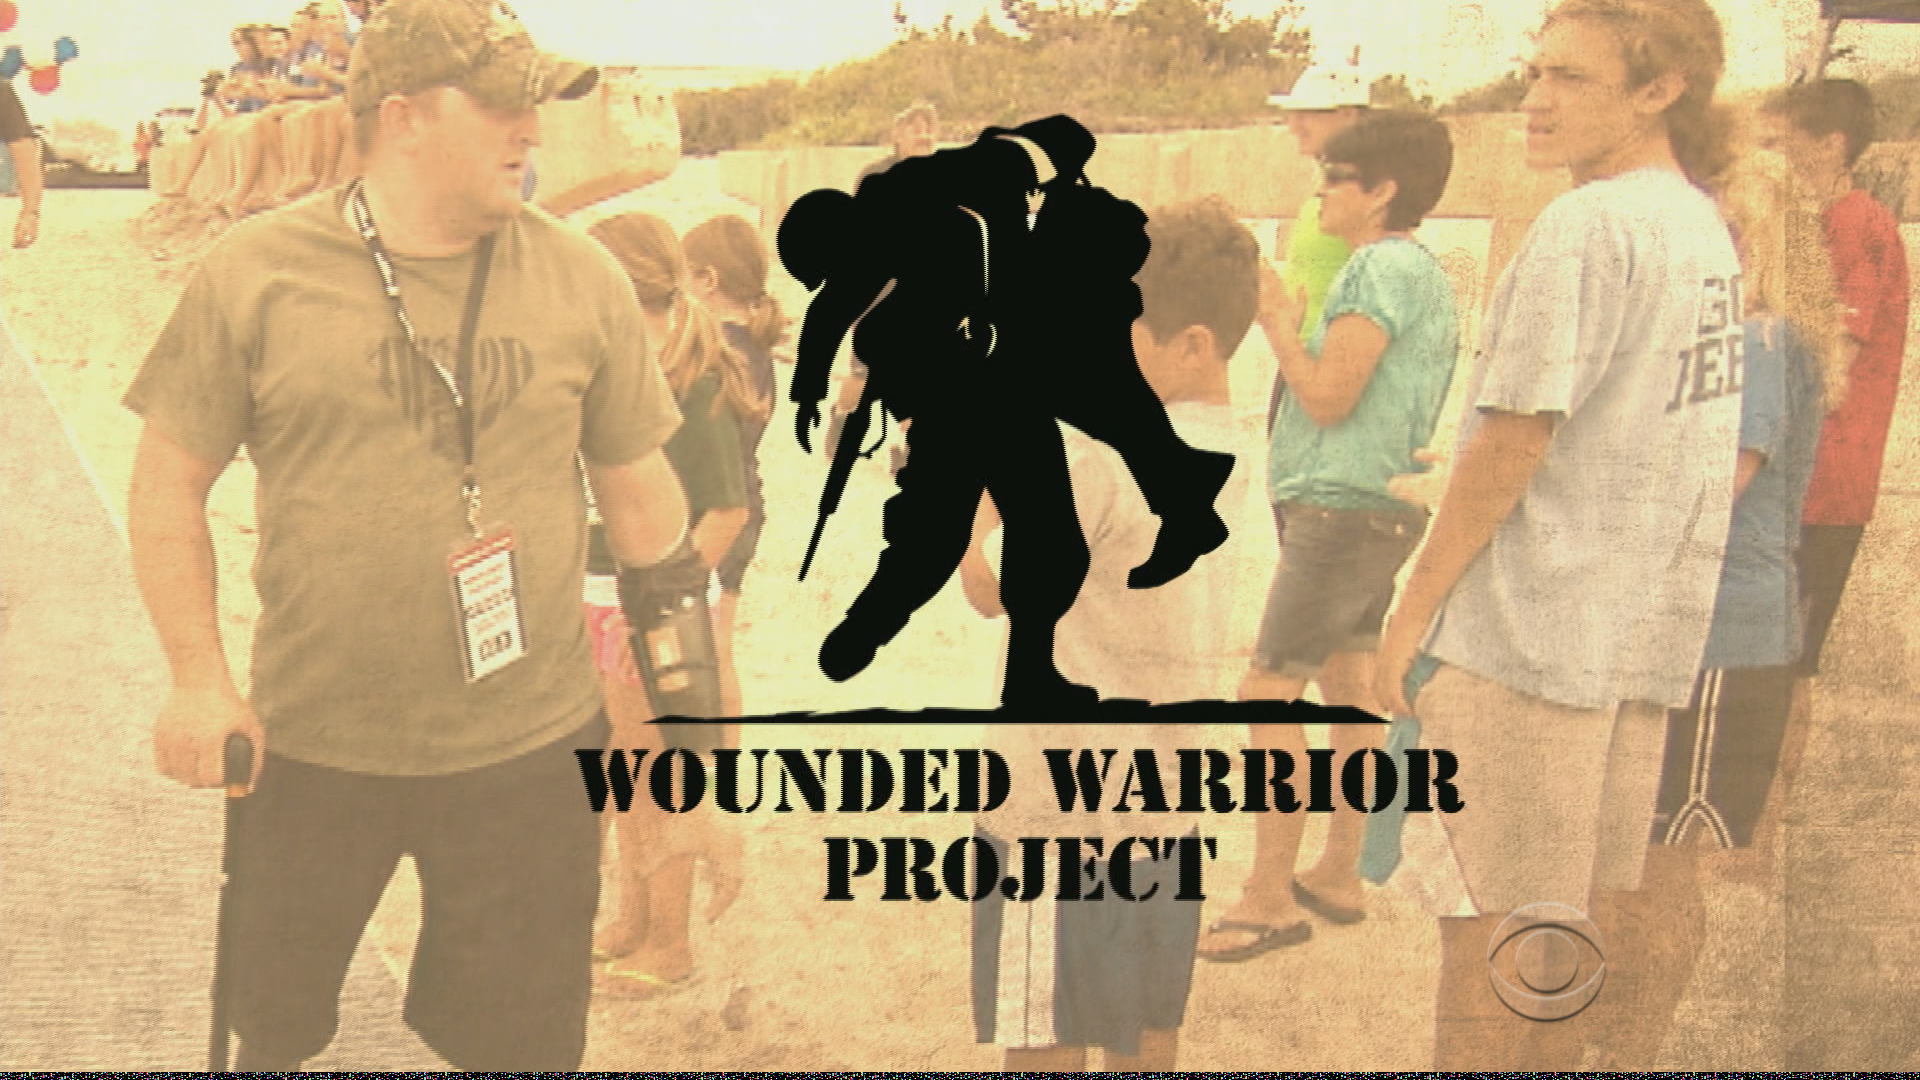 Wounded Warrior Project investigation draws strong social media reaction